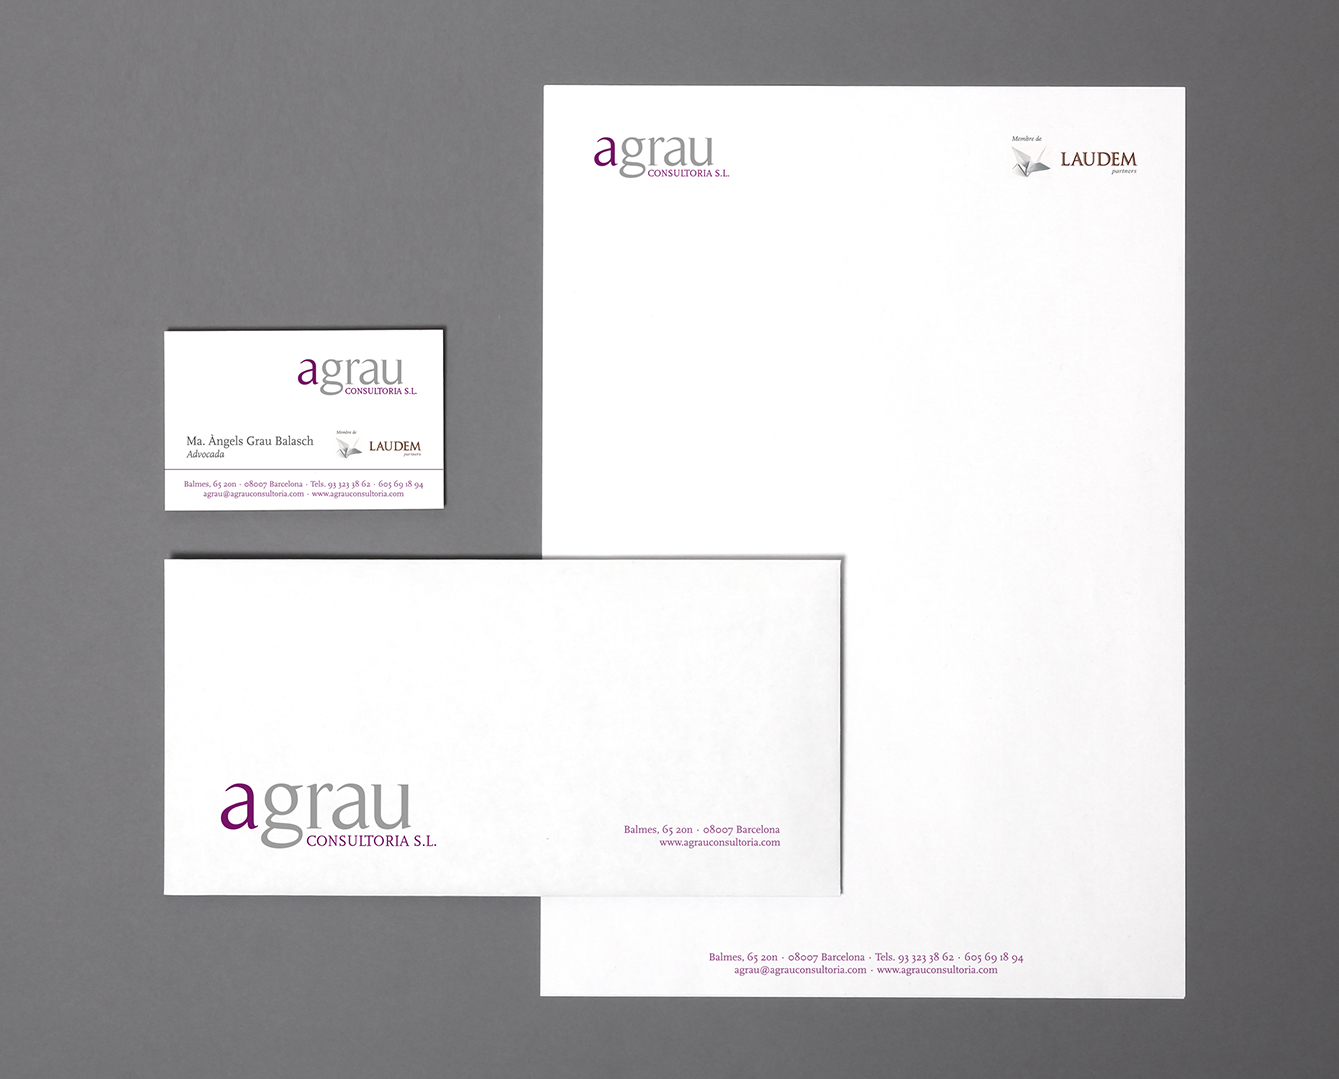 Blank stationery still life with business cards, paper, envelope. Template for branding identity. For graphic designers presentations and portfolios.